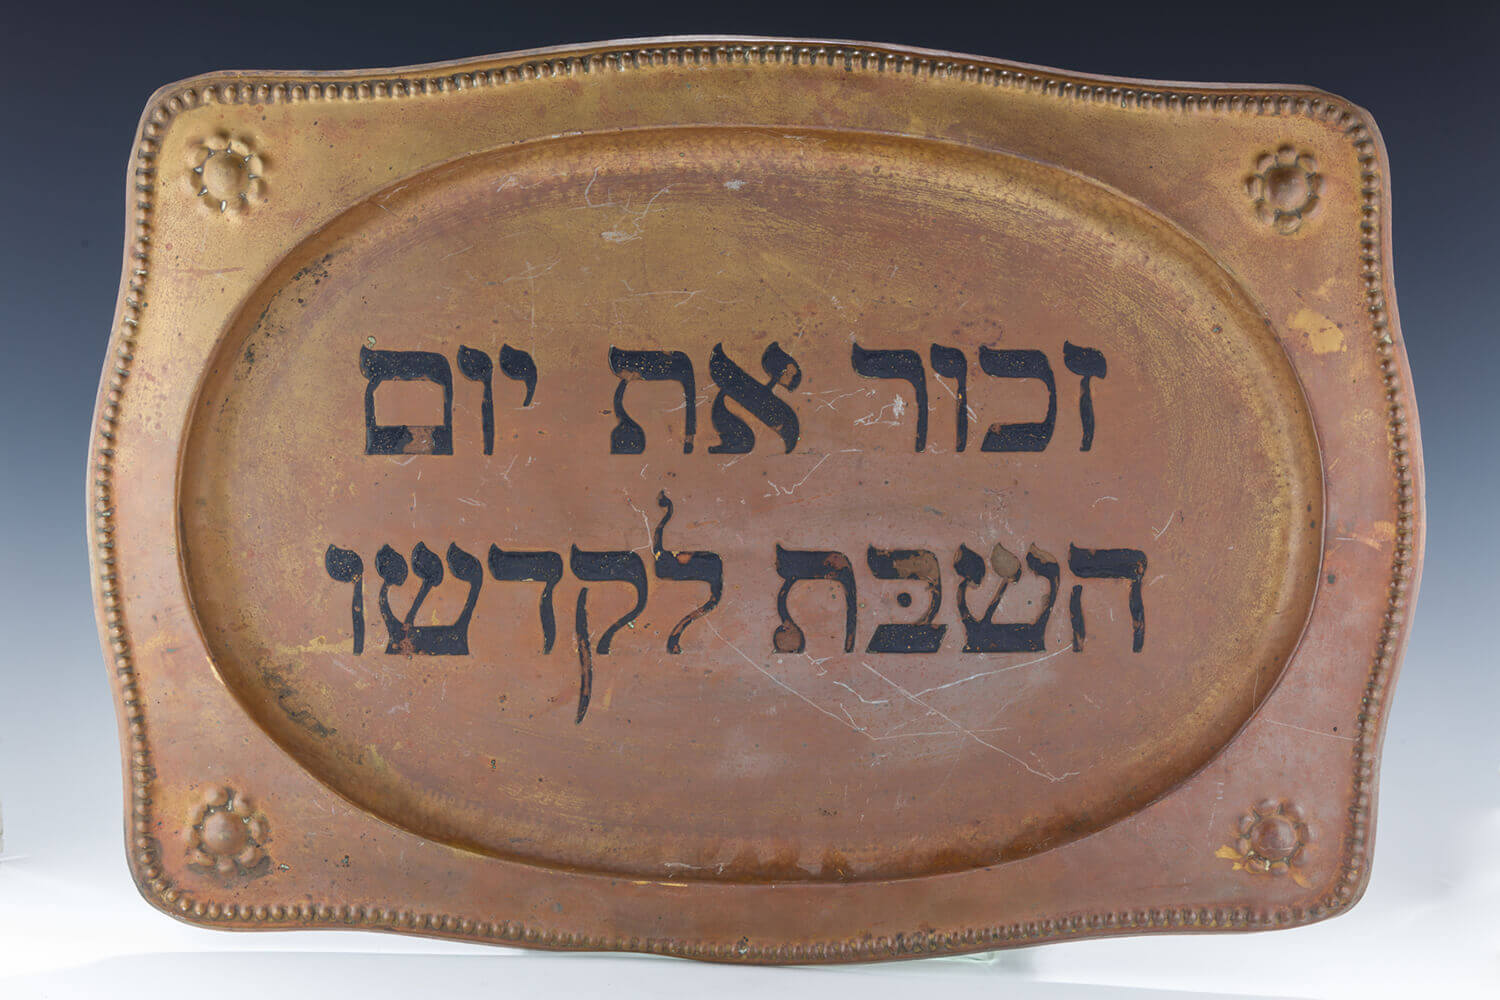 007. A BRASS SABBATH BREAD TRAY BY HEINRICH SCHWED